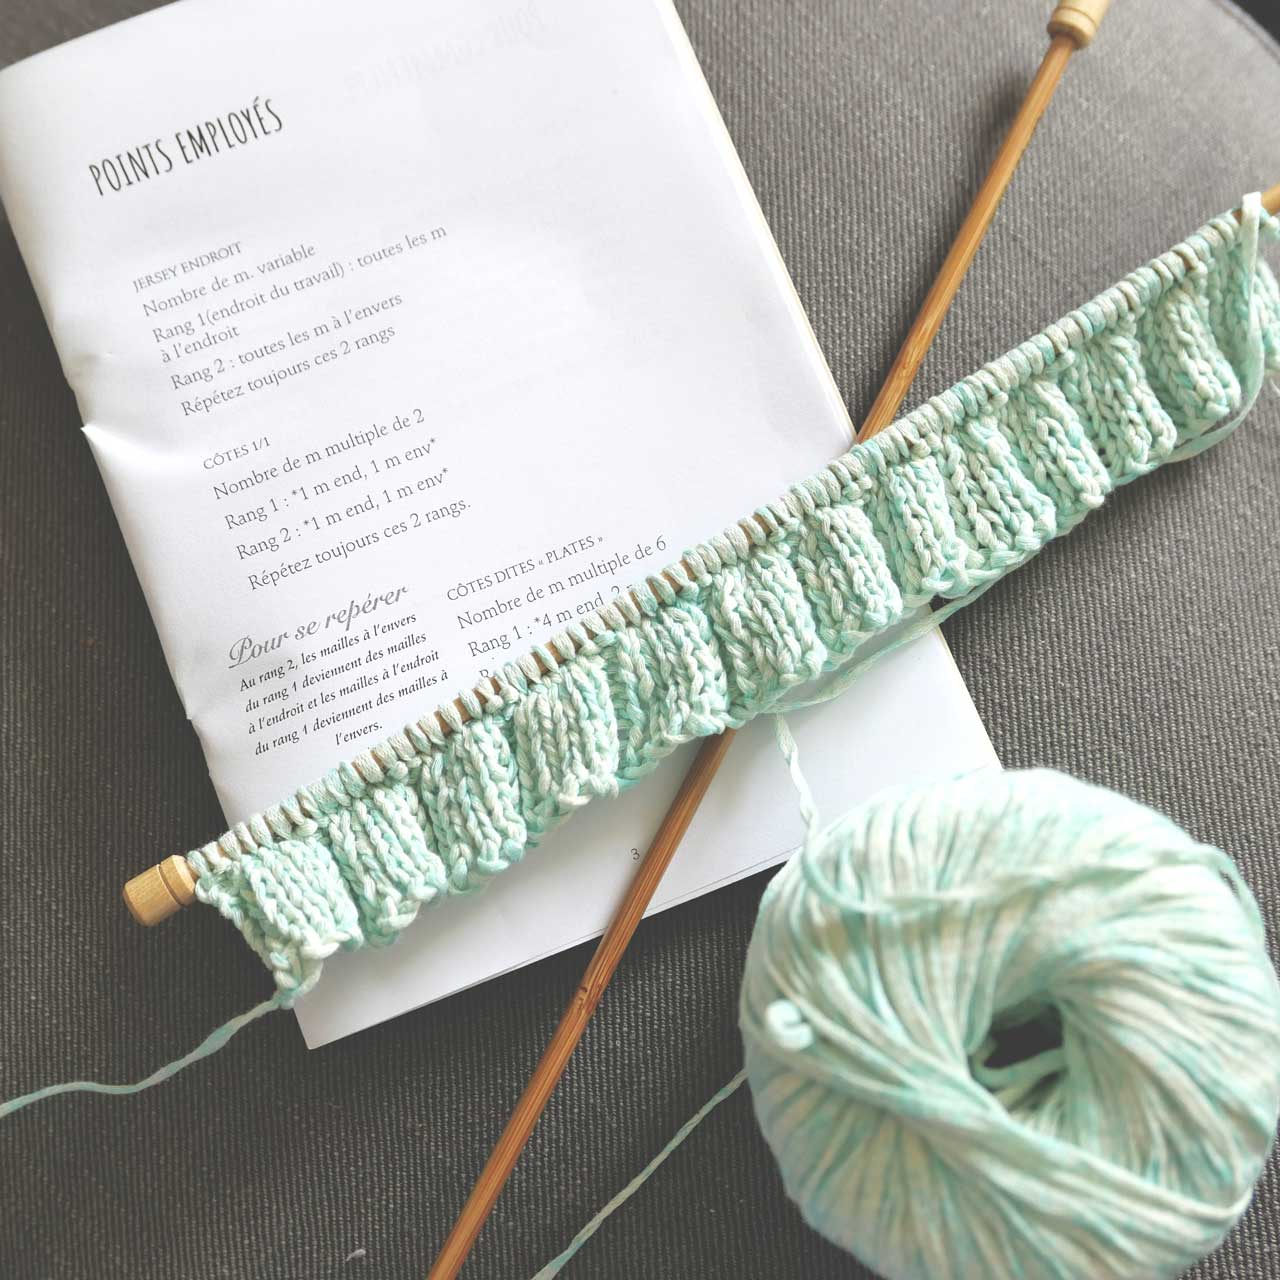 Tricot-Nelly-Genisson-2